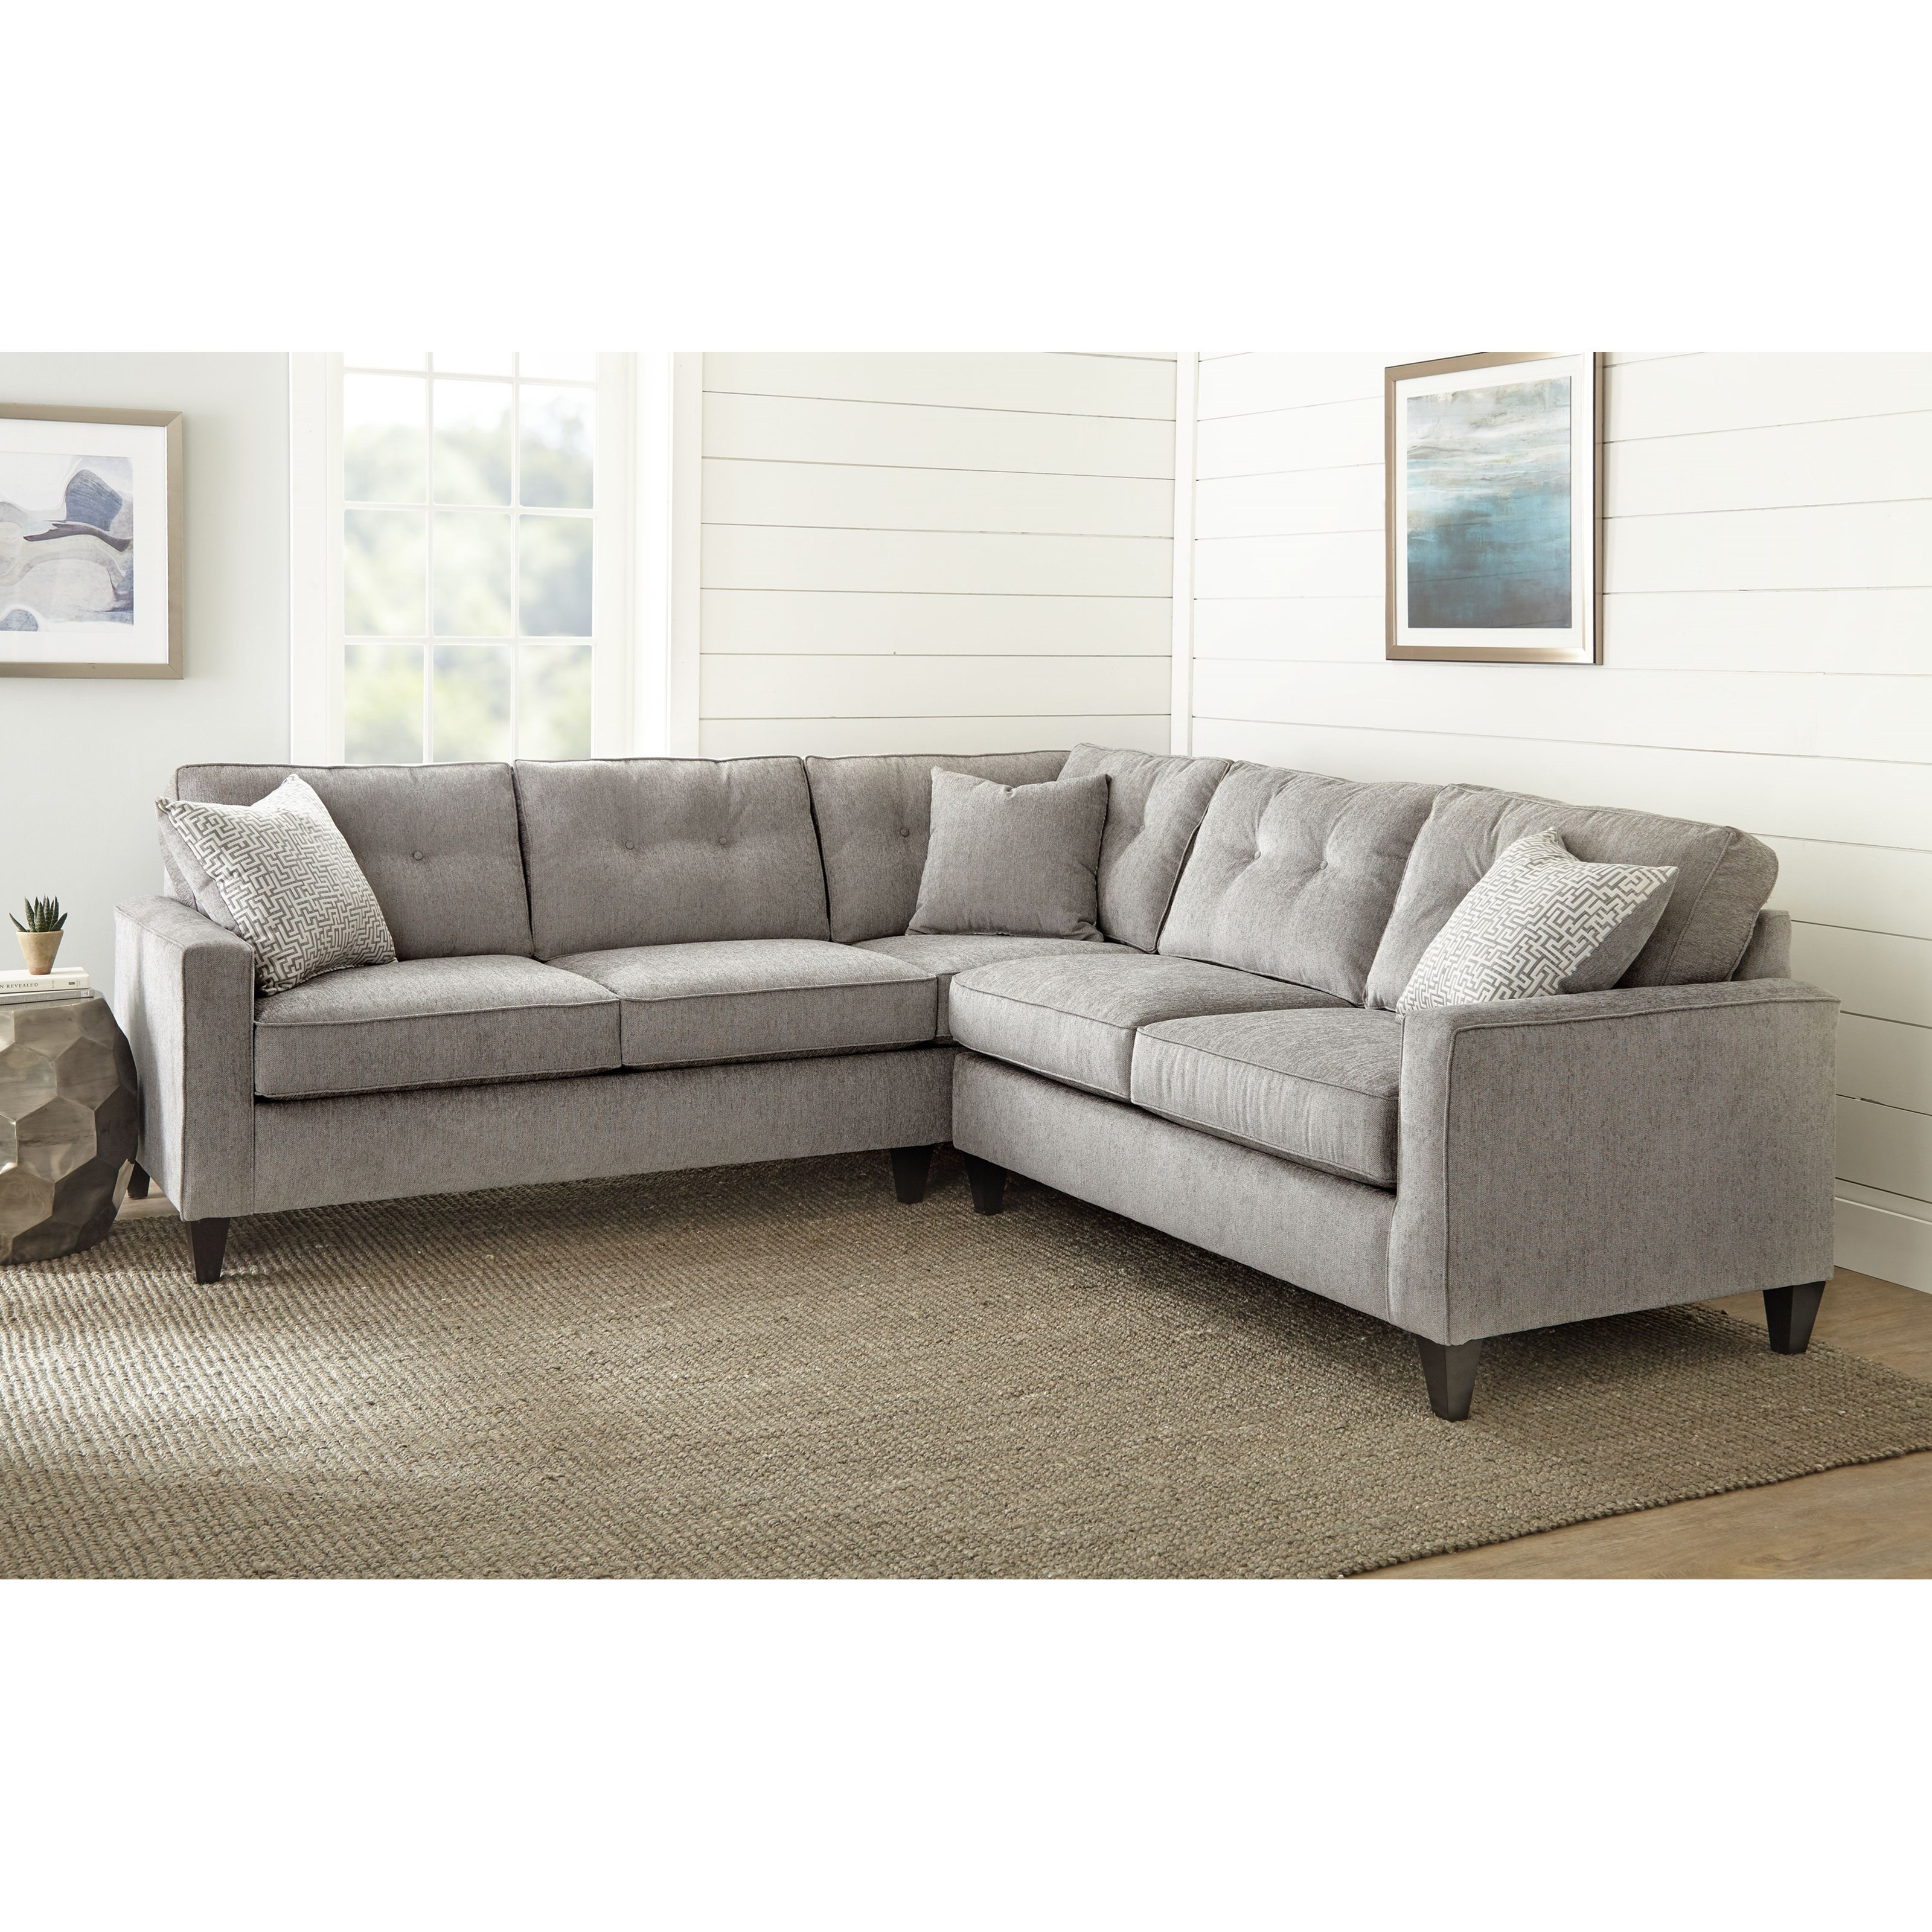 Transitional 2 Piece Sectional with 3 Accent Pillows